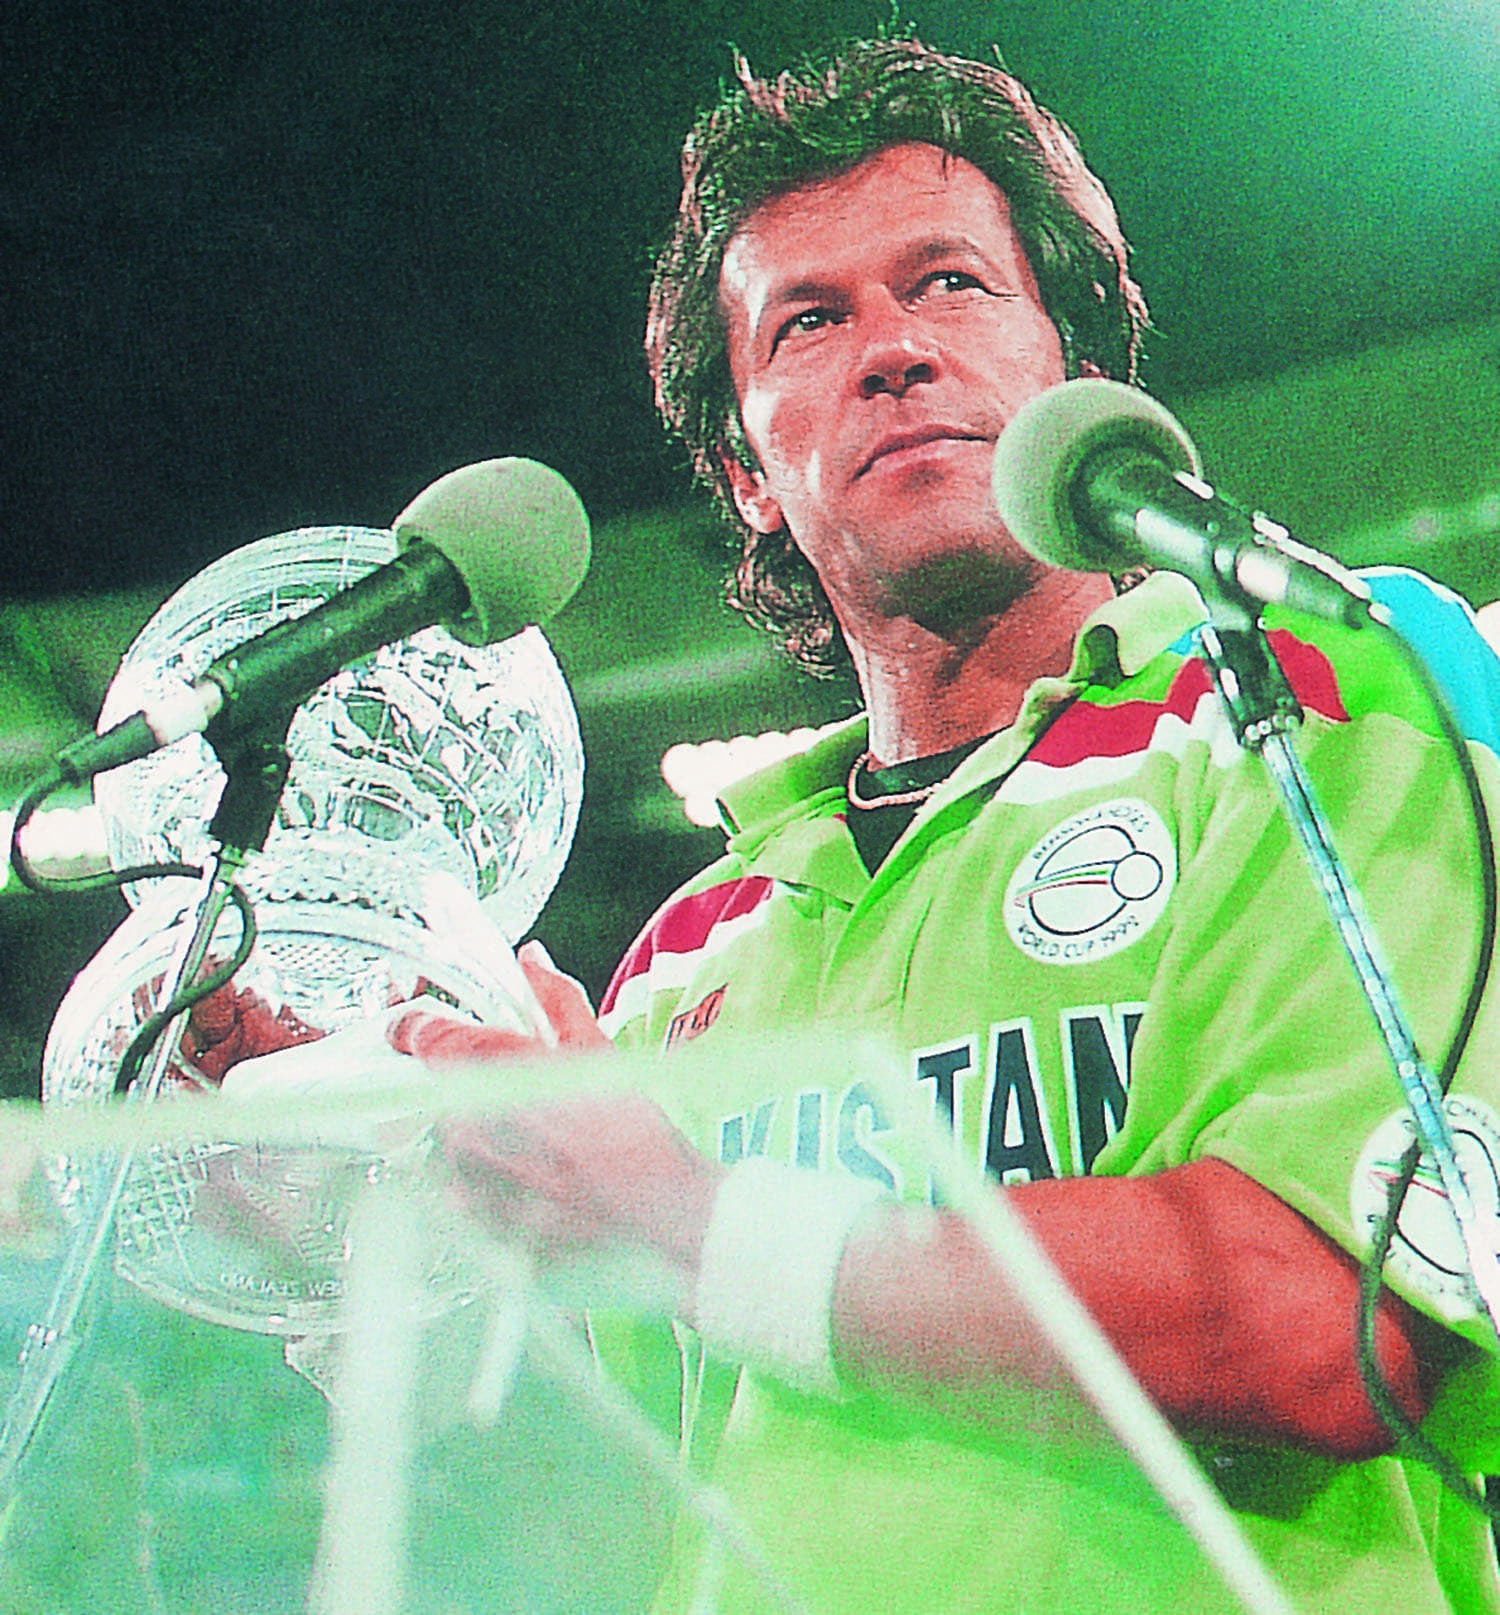 The man and the Cup. Imran Khan speaking as the winning captain in Australia at the end of the 1992 World Cup.